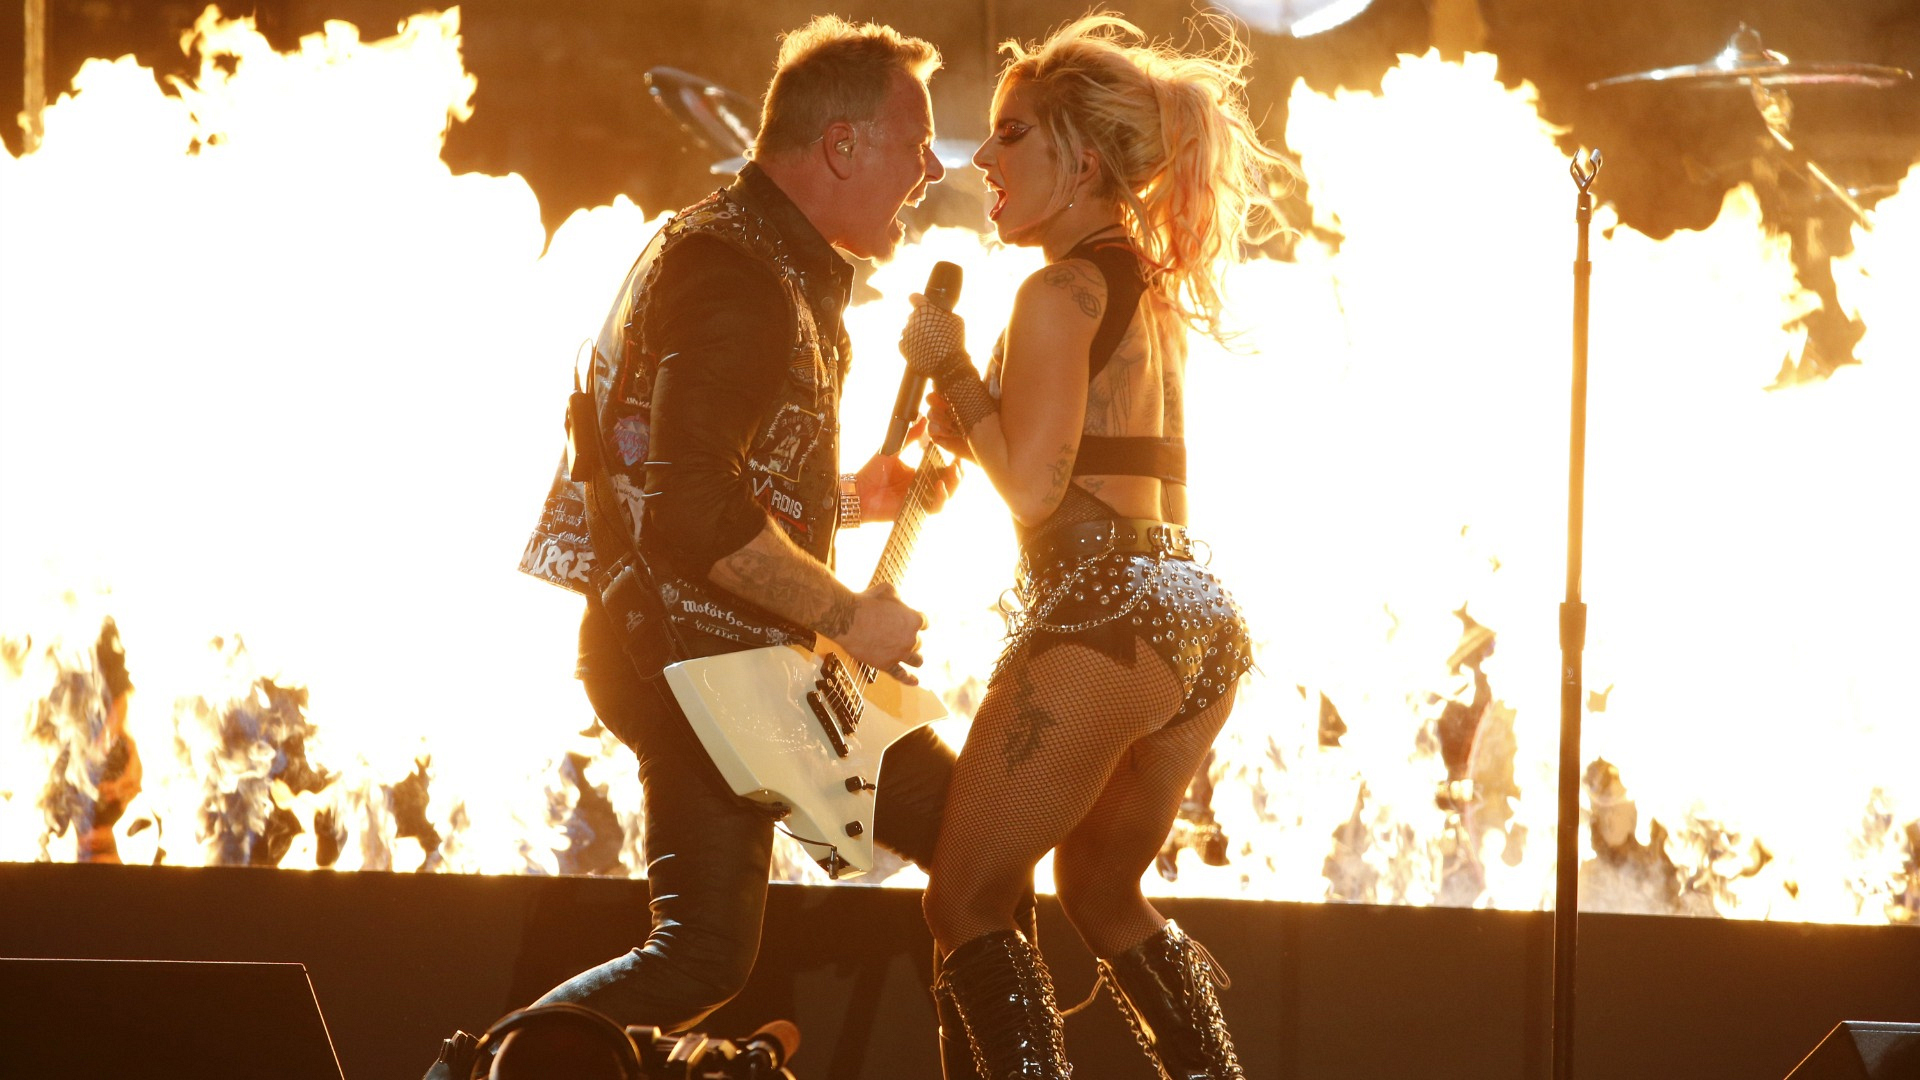 Lady Gaga faced off with Metallica lead singer James Hetfield in a fiery GRAMMY performance.